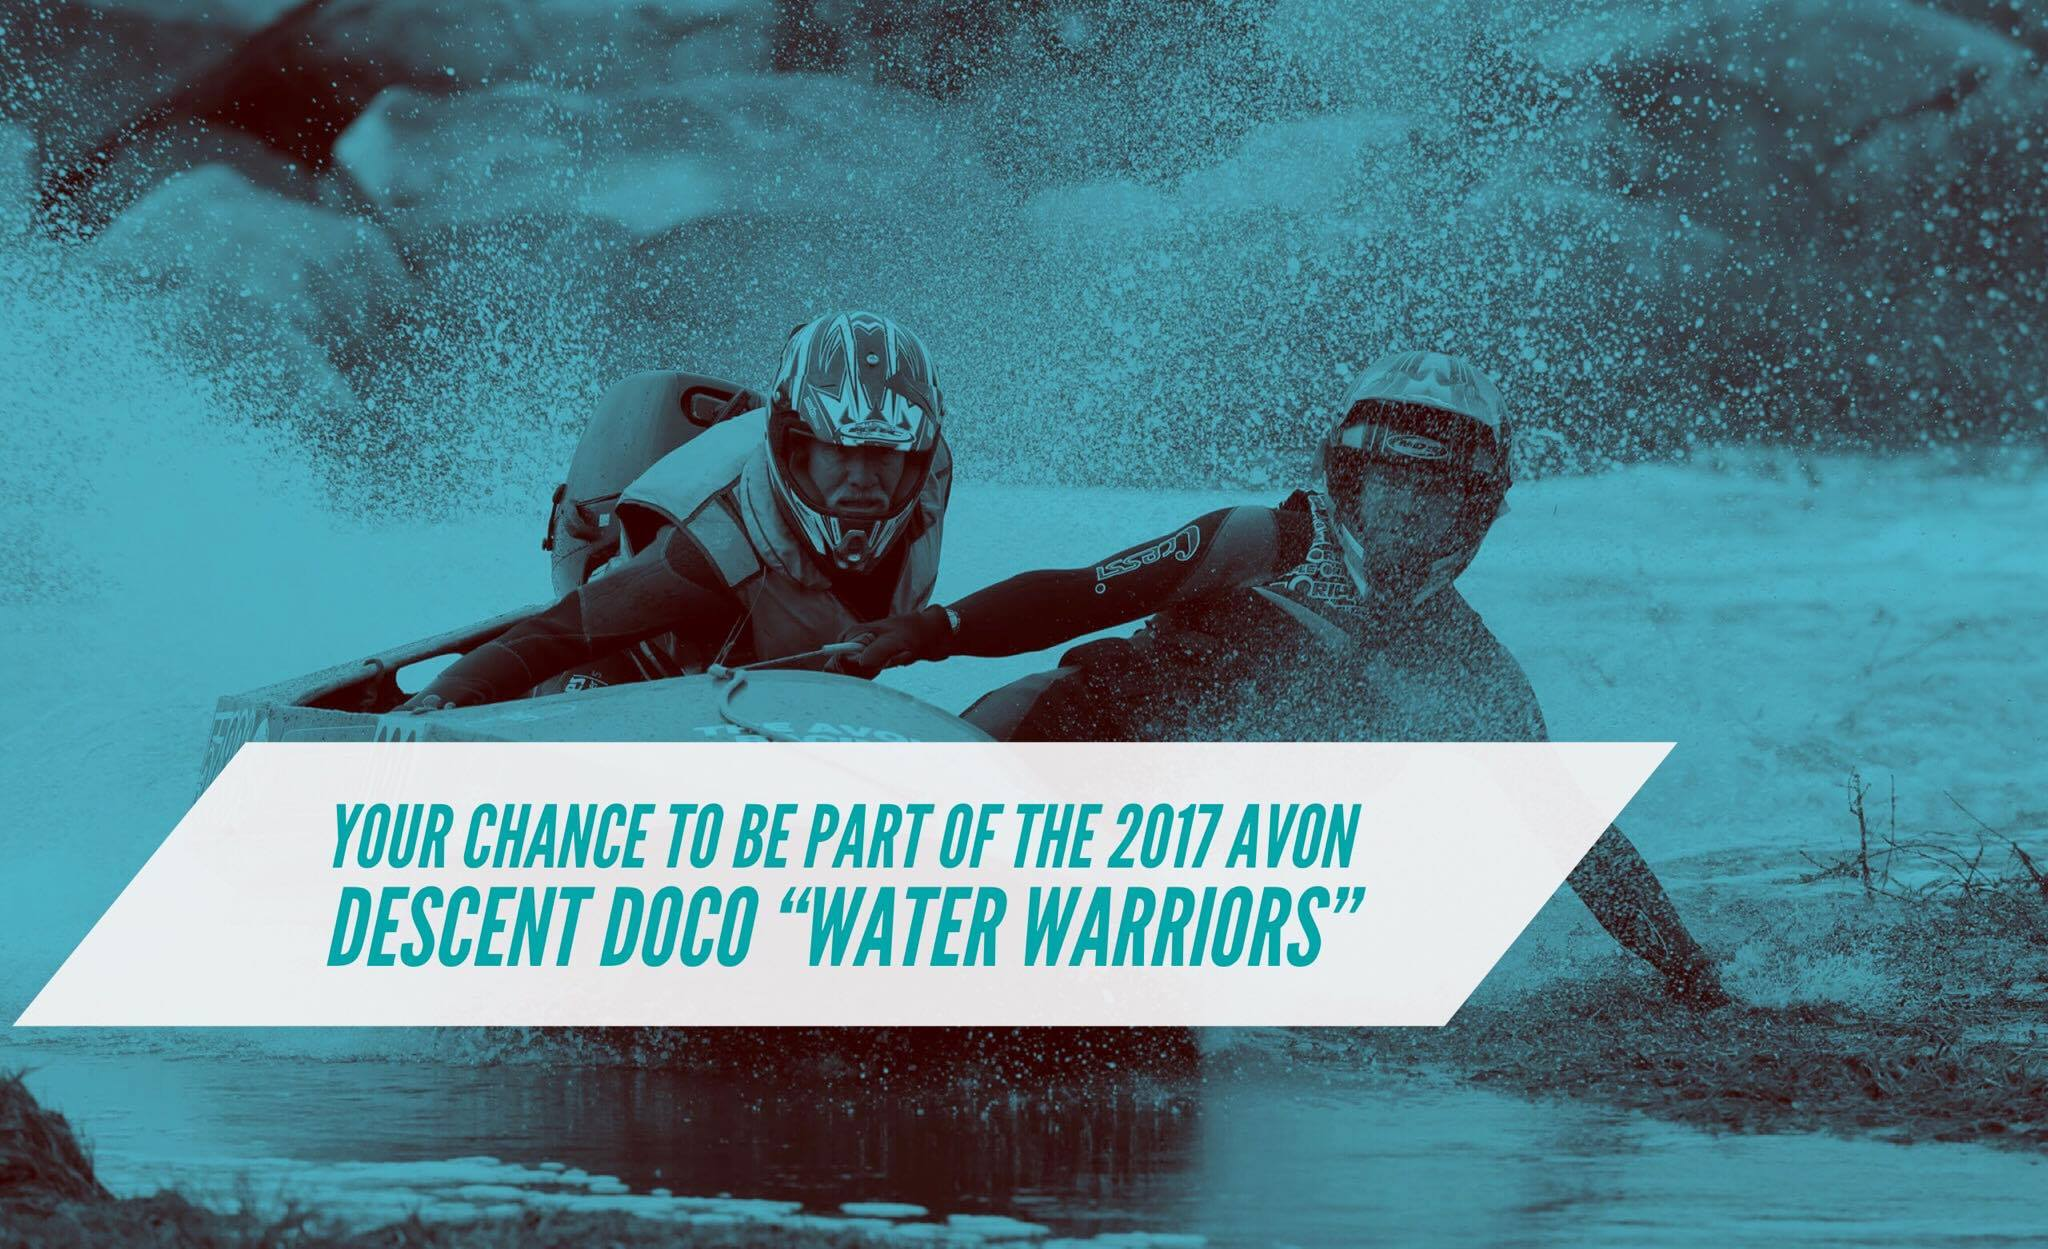 Be part of the 2017 Avon Descent doco 'Water Warriors'